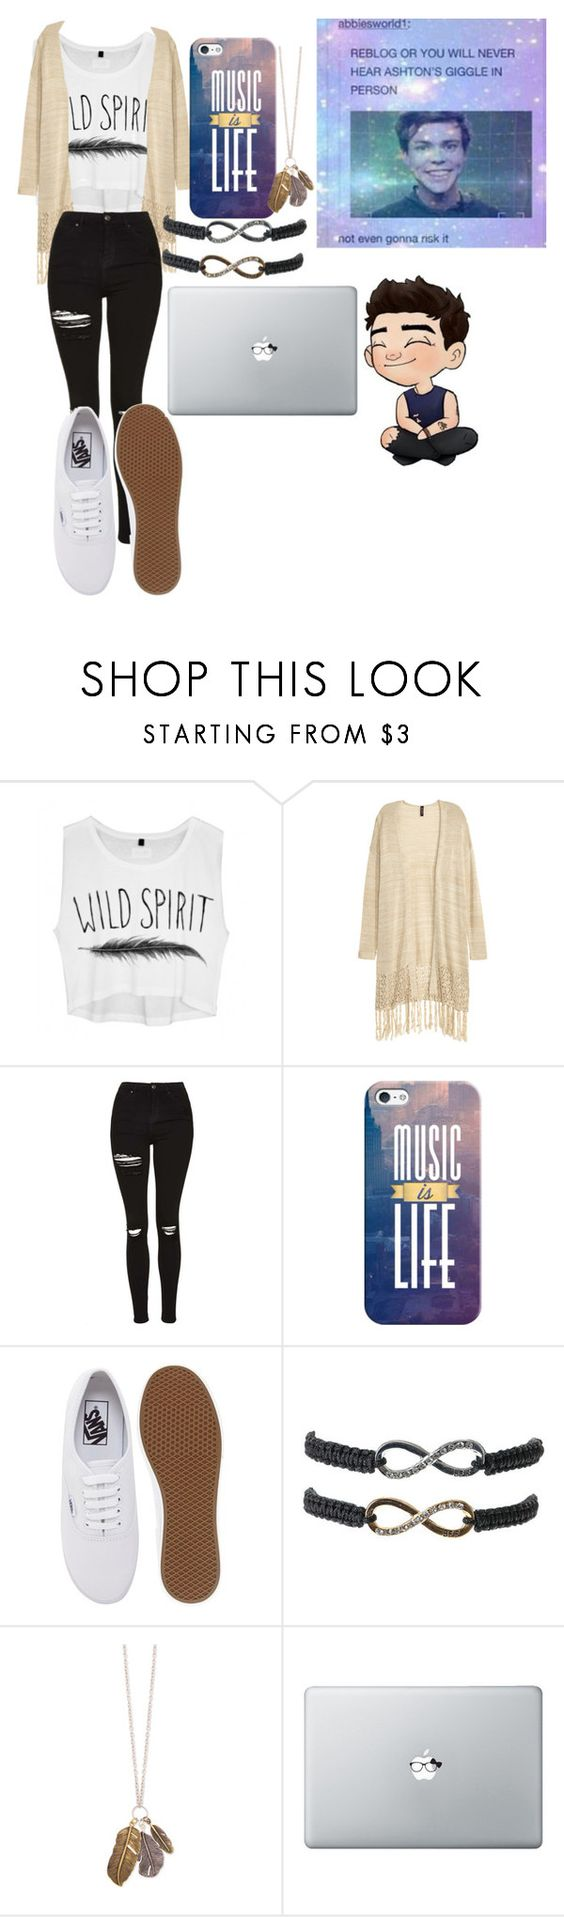 """18"" by chichipie ❤ liked on Polyvore featuring beauty, Topshop, Casetify and Vans"